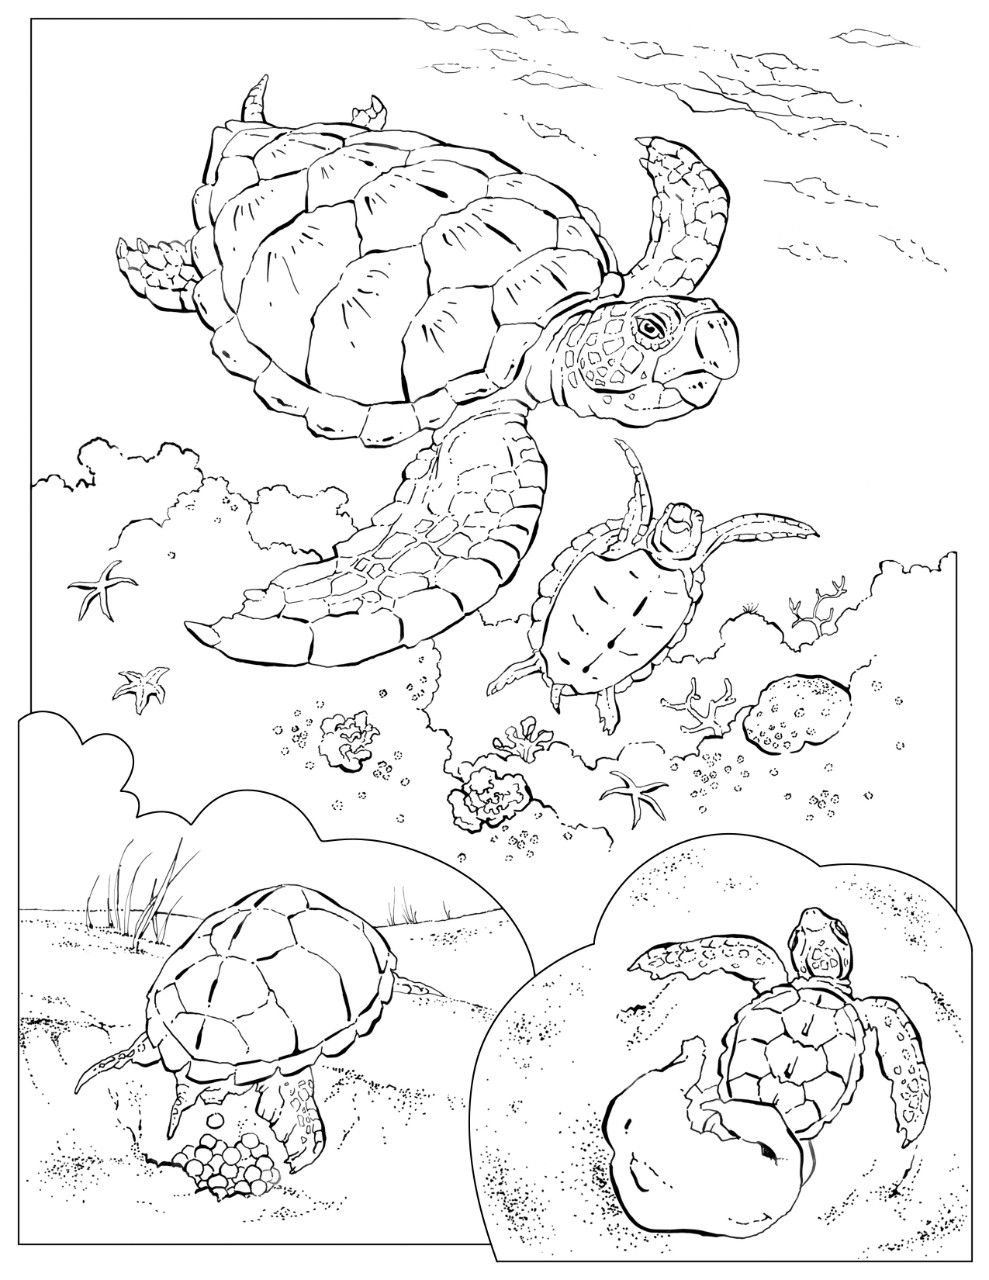 Green sea turtle coloring pages on national geographic com